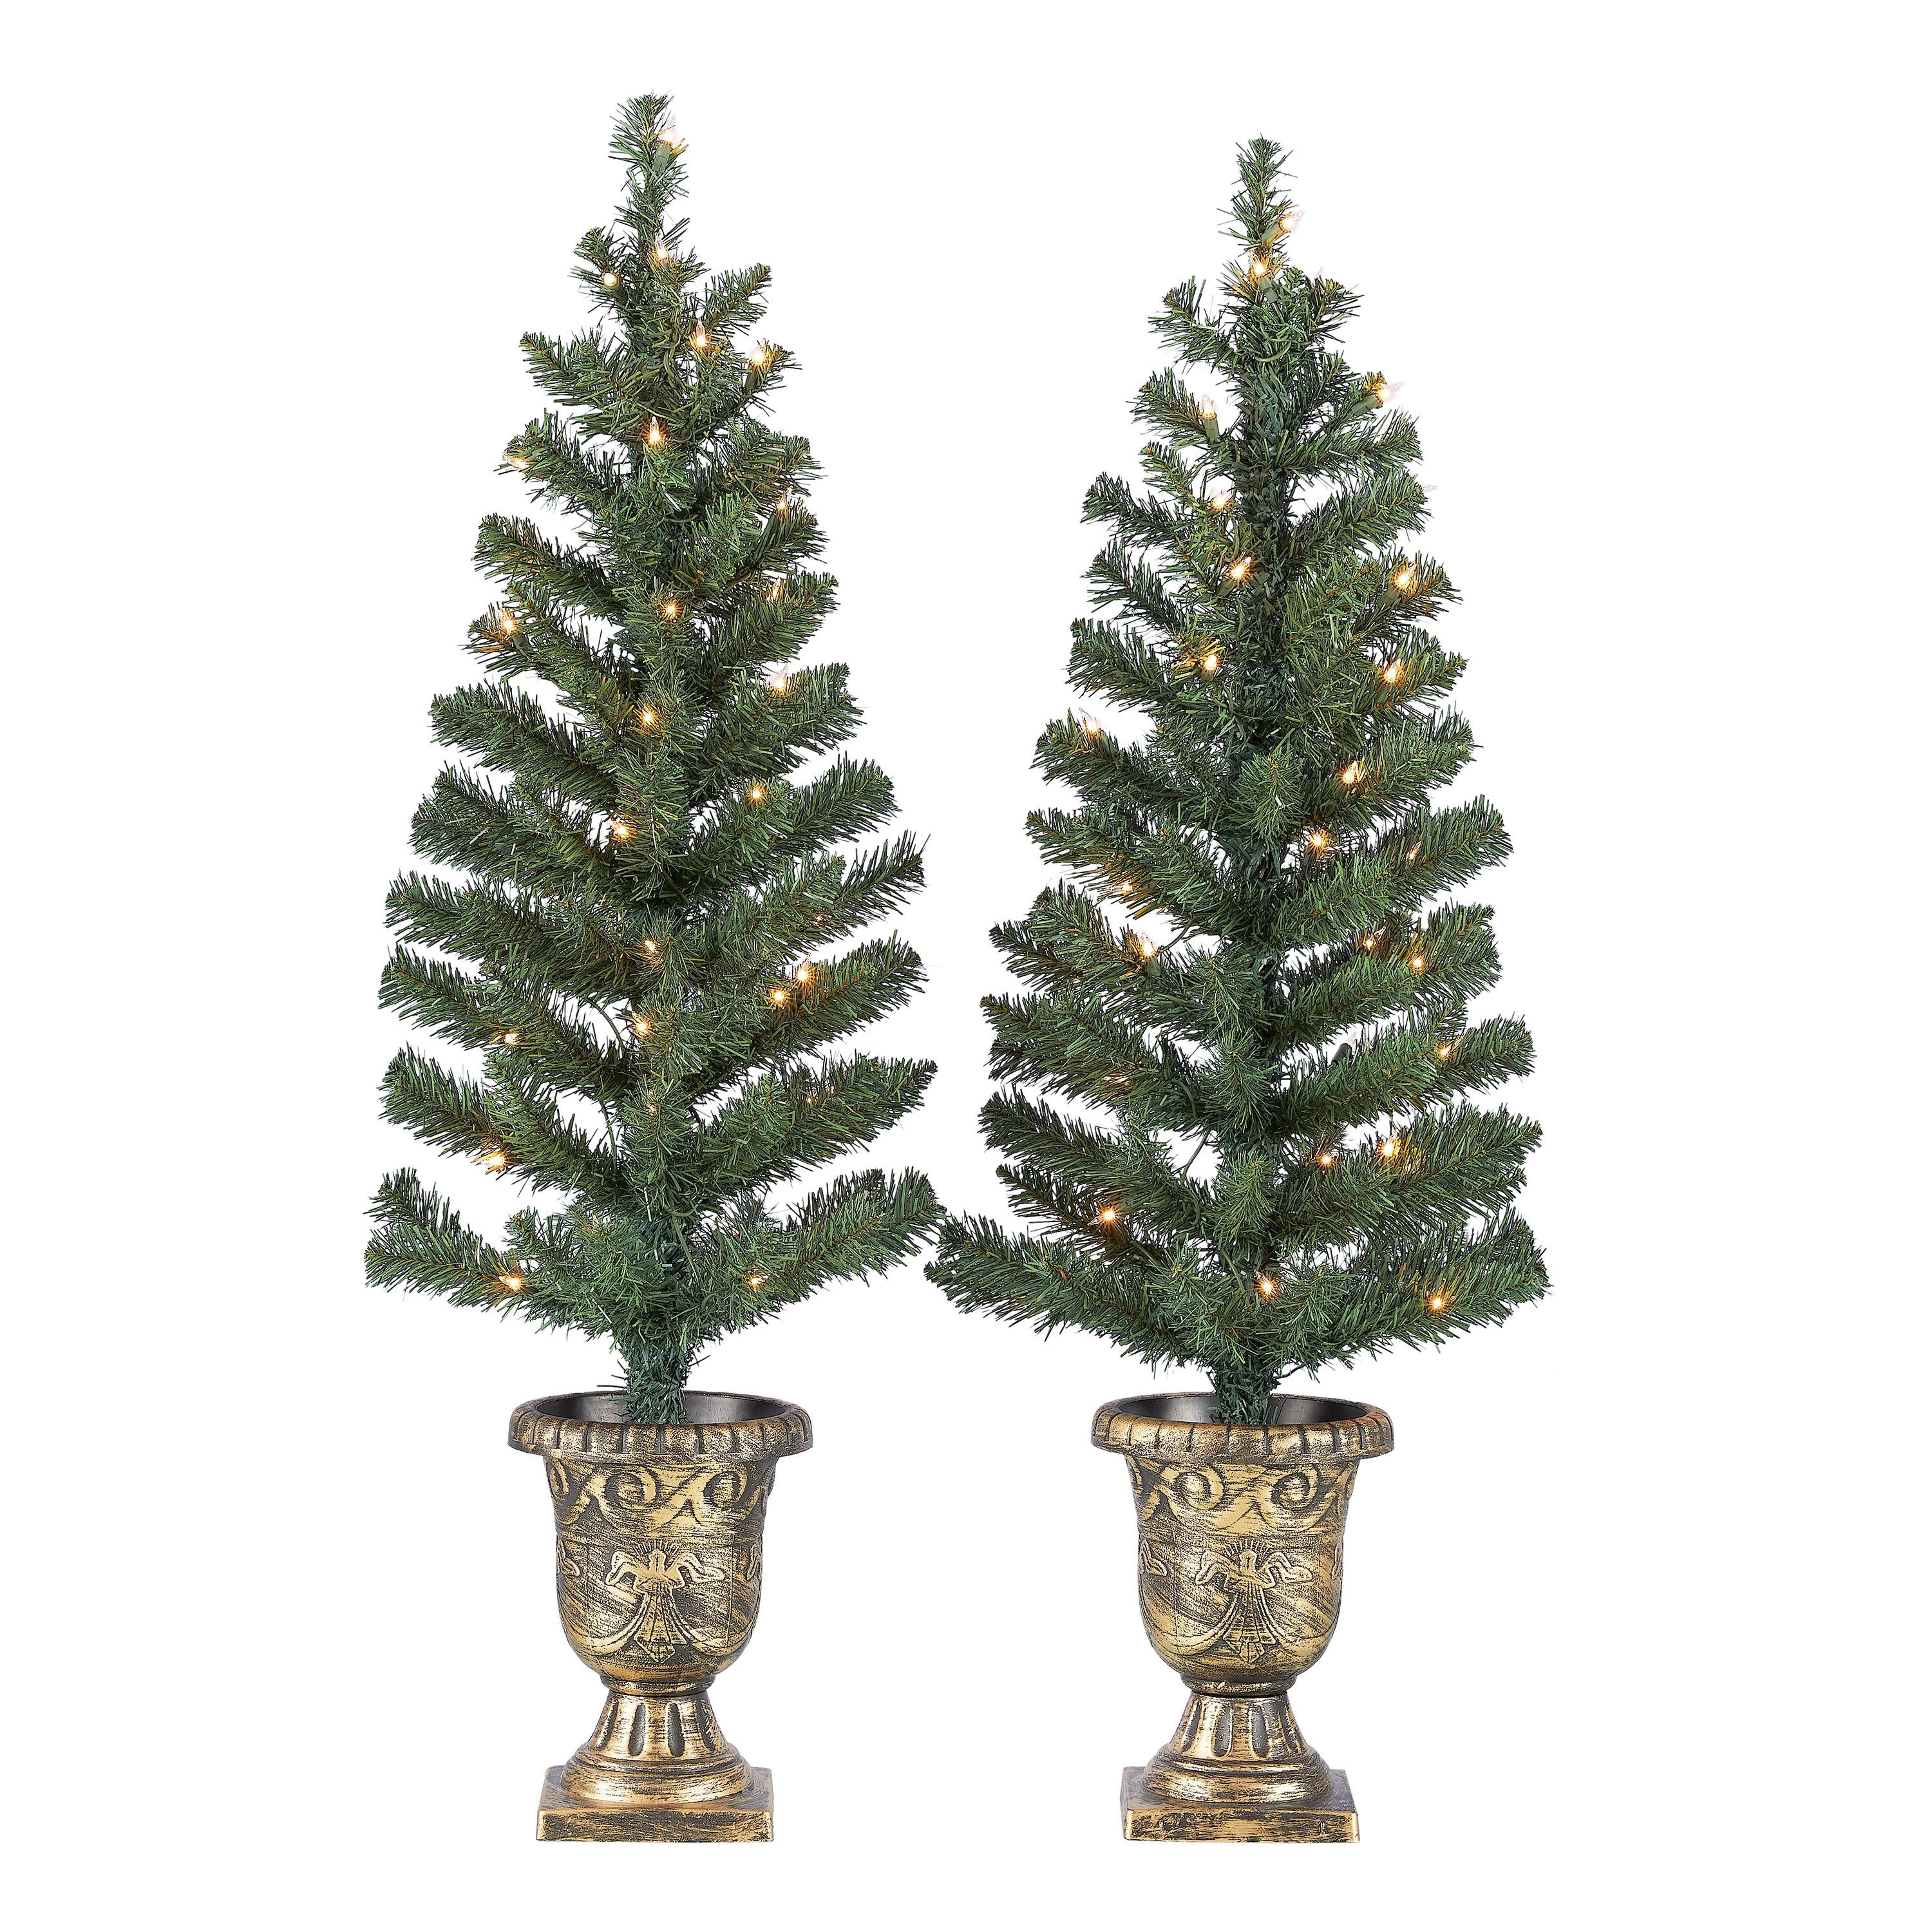 4 Ft Pre Lit Entryway Trees Set Of 2 Outdoor Christmas Tree Porch Christmas Tree Christmas Tree Set